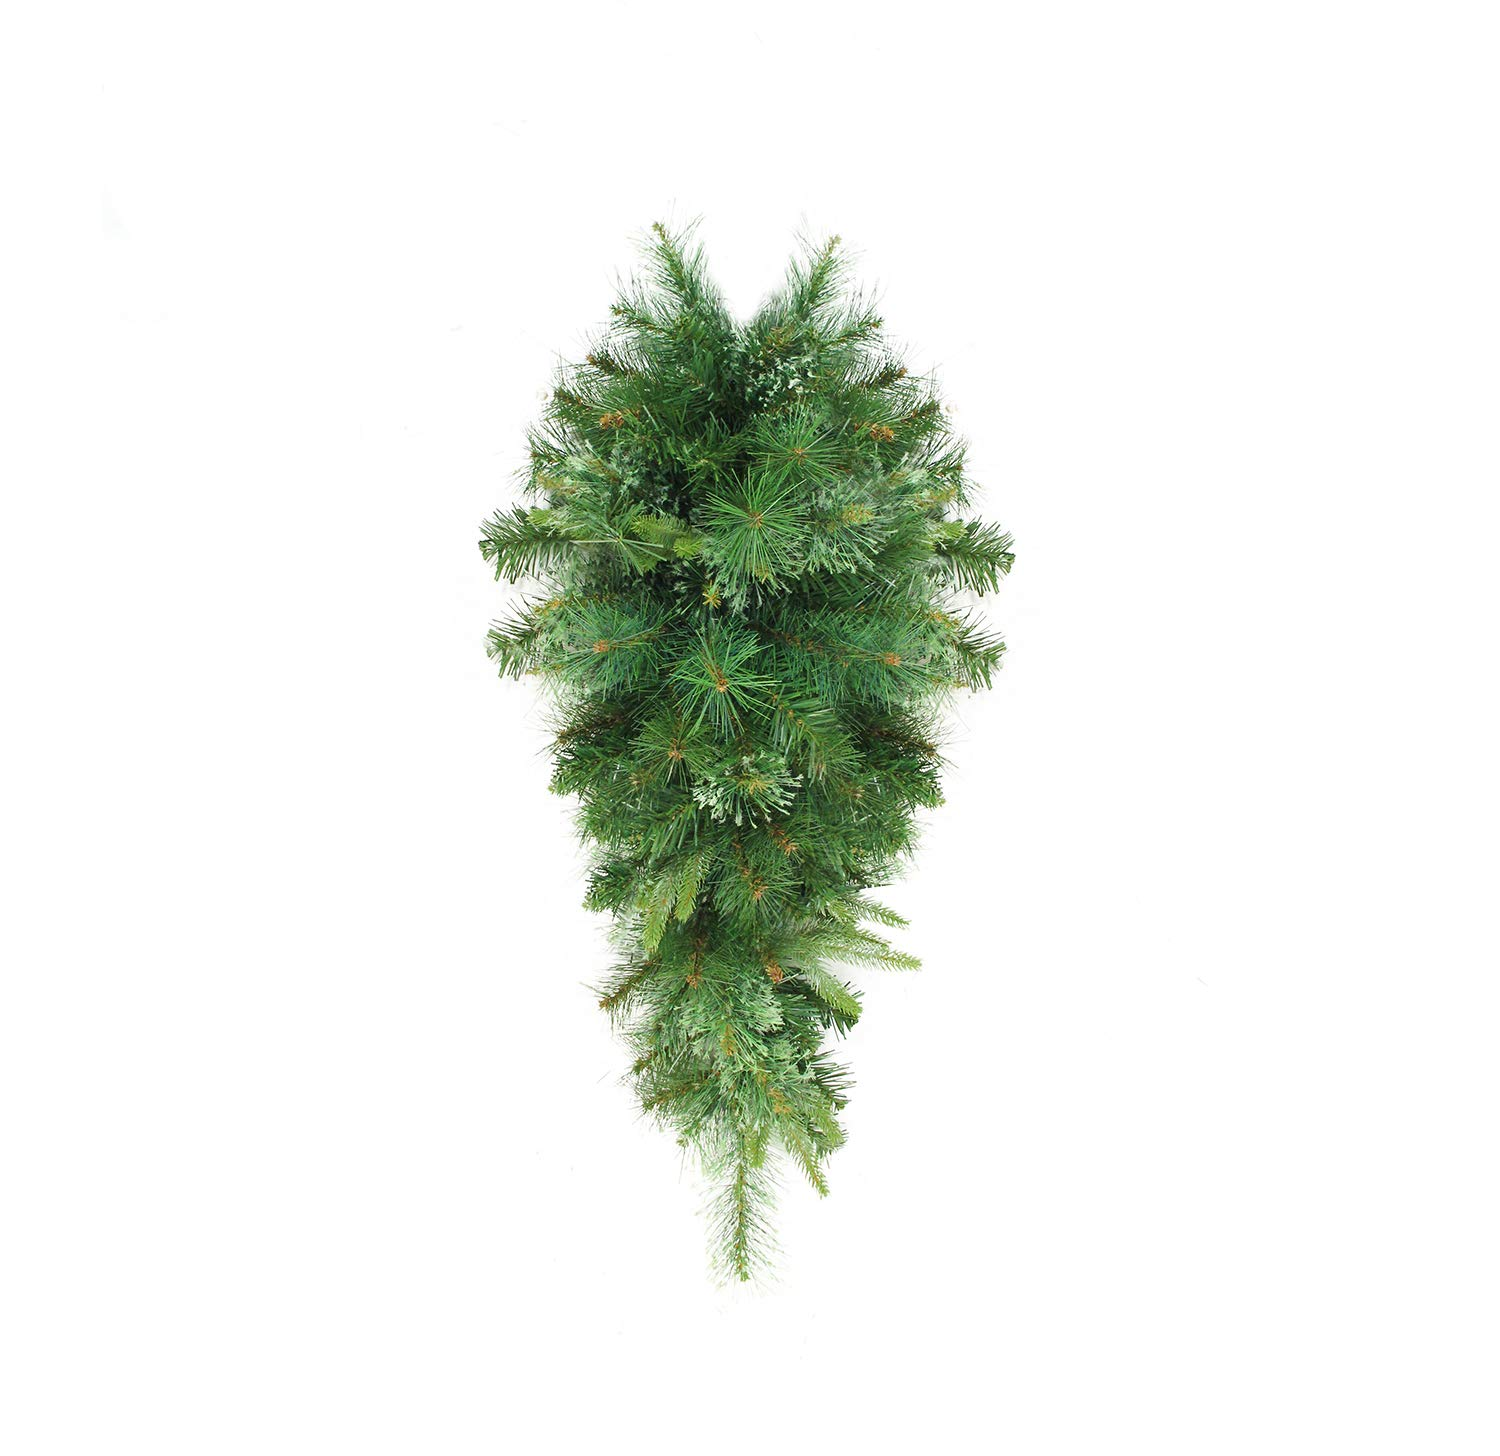 Northlight 36'' Cashmere Mixed Pine Artificial Christmas Teardrop Swag - Unlit by Northlight